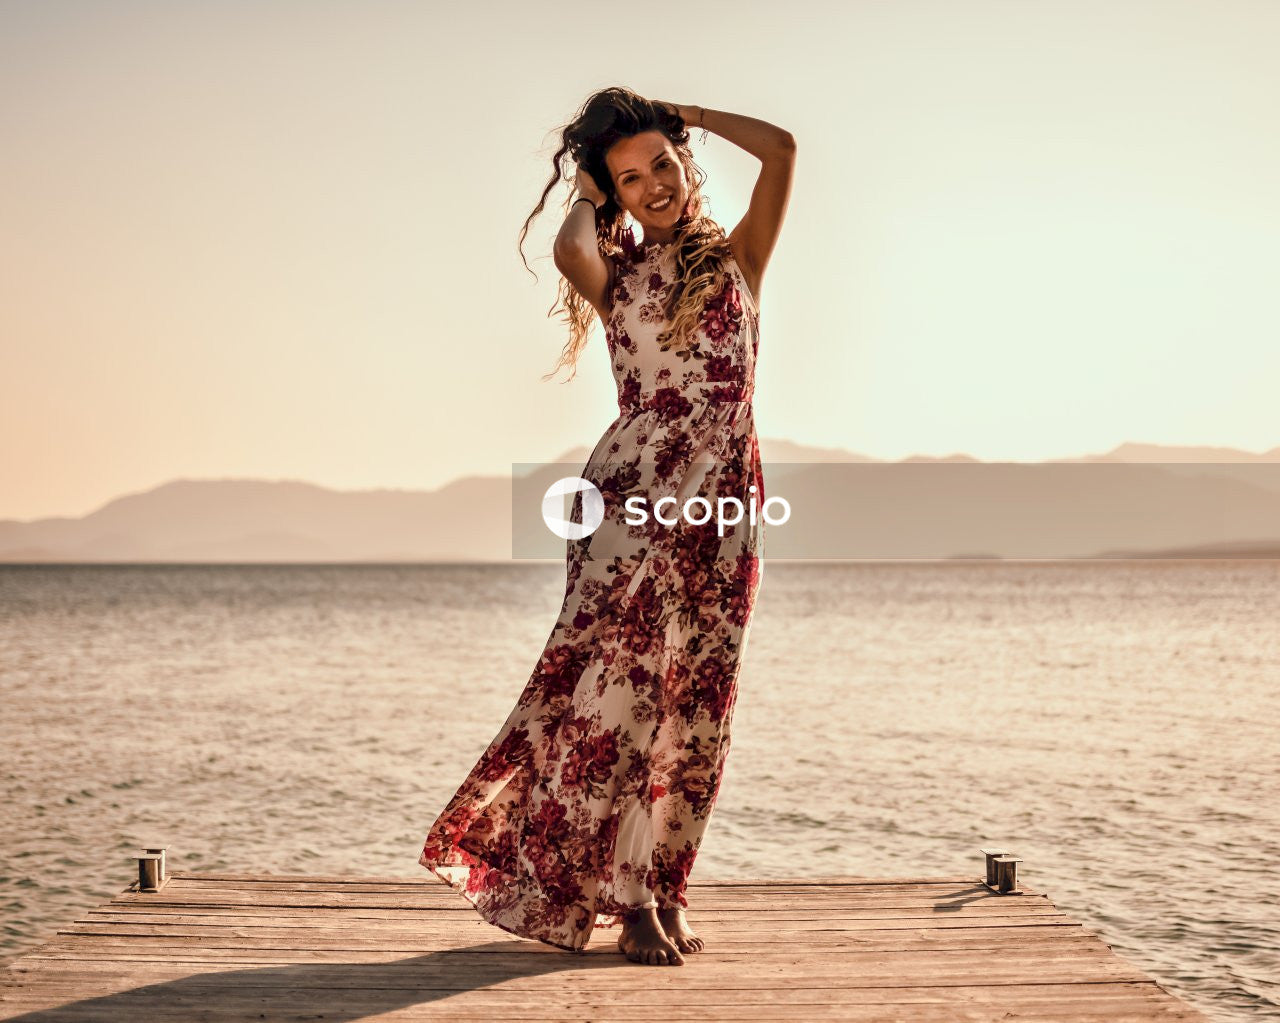 Woman in black and red floral dress standing on brown wooden dock during sunset